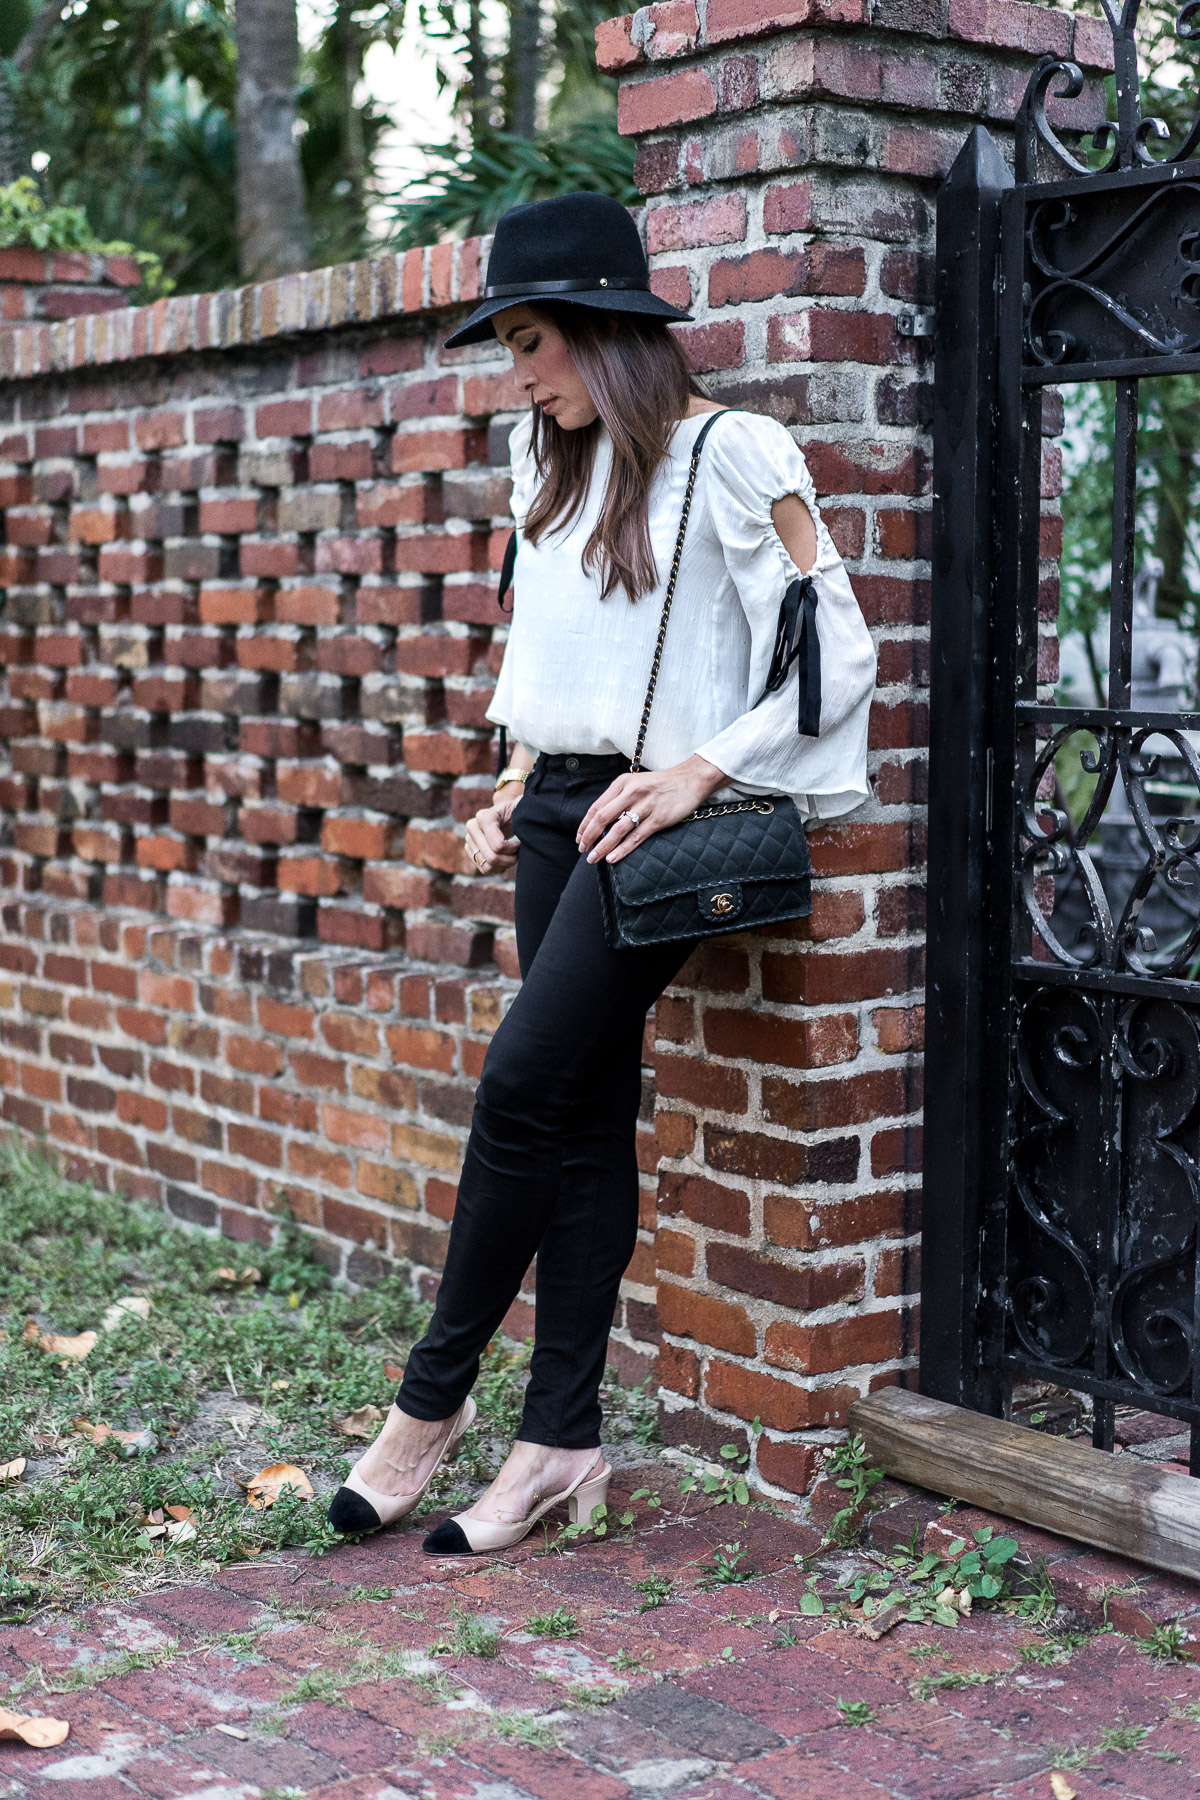 Club Monaco Priyalla top worn by Amanda of A Glam Lifestyle blog with her AG black legging jeans and Ivanka Trump Liah slingback pumps